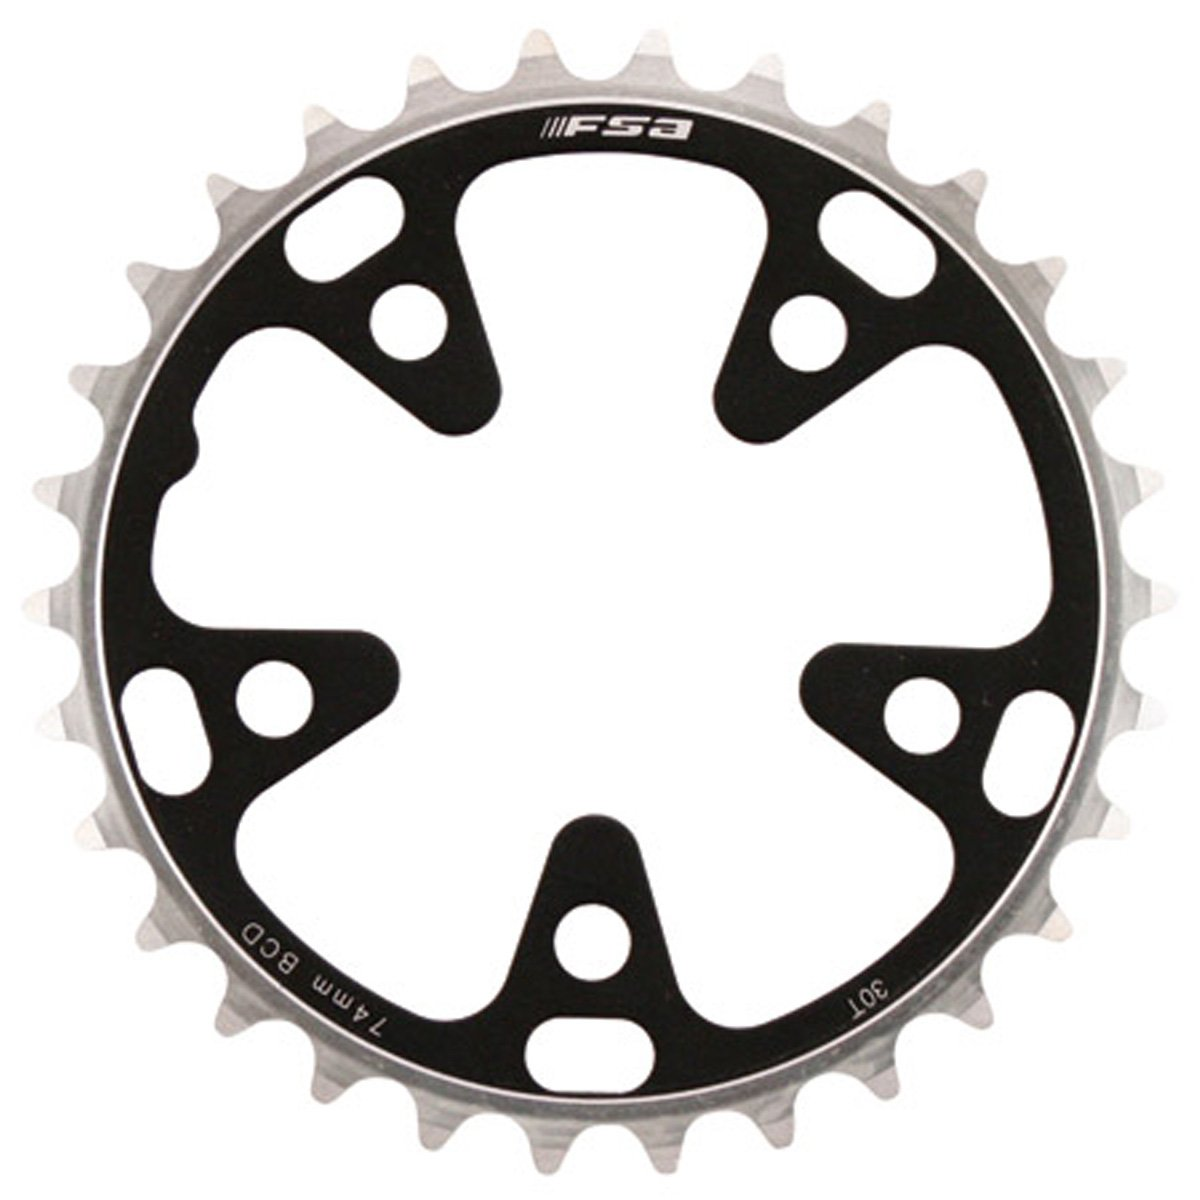 Full Speed Ahead FSA Pro Road Bicycle Chainring - 74 x 30T S9-10 - 370-0330E